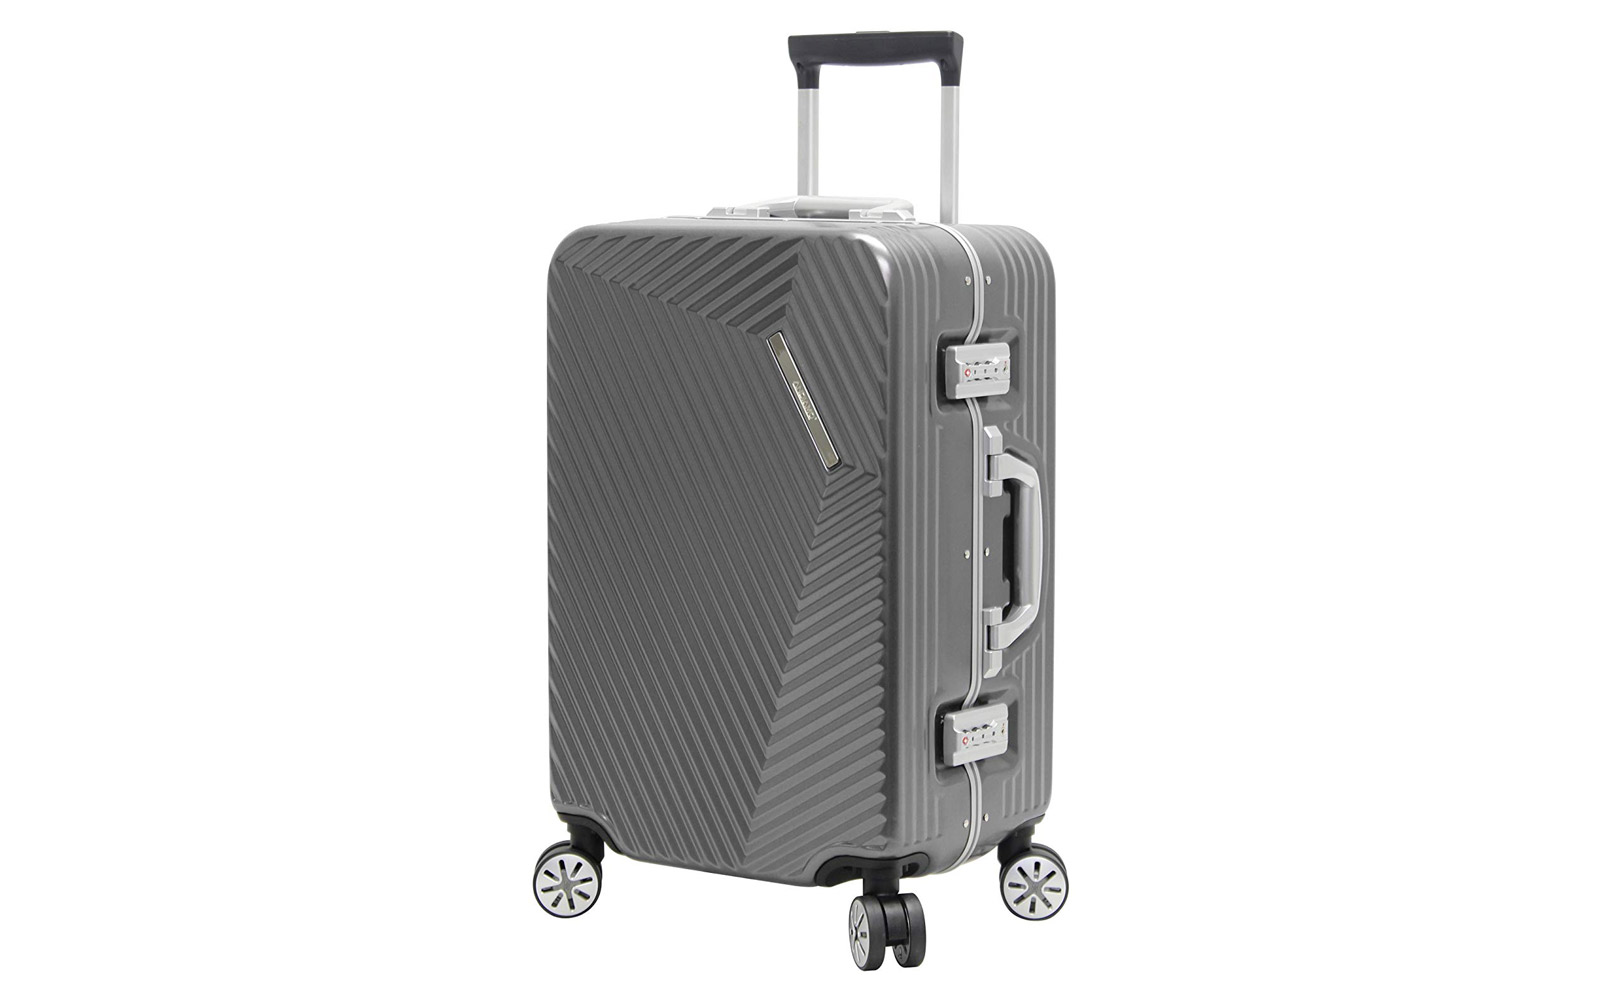 carry-on luggage size jetblue